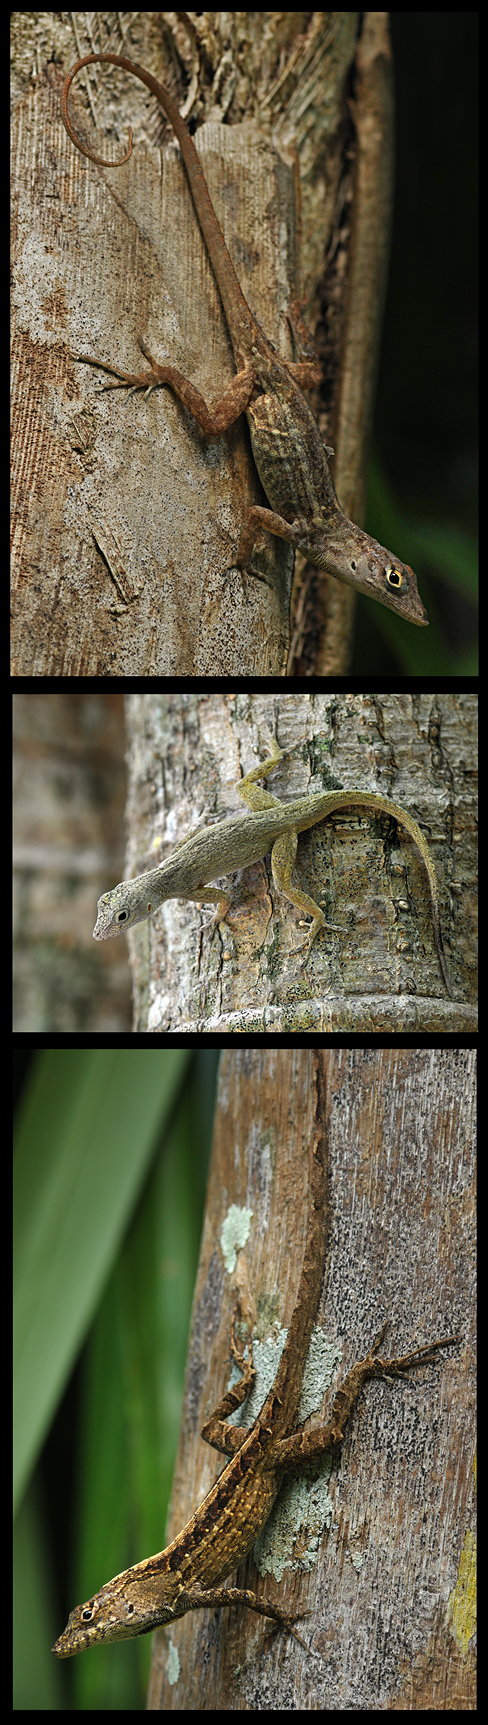 Lizard Camouflage